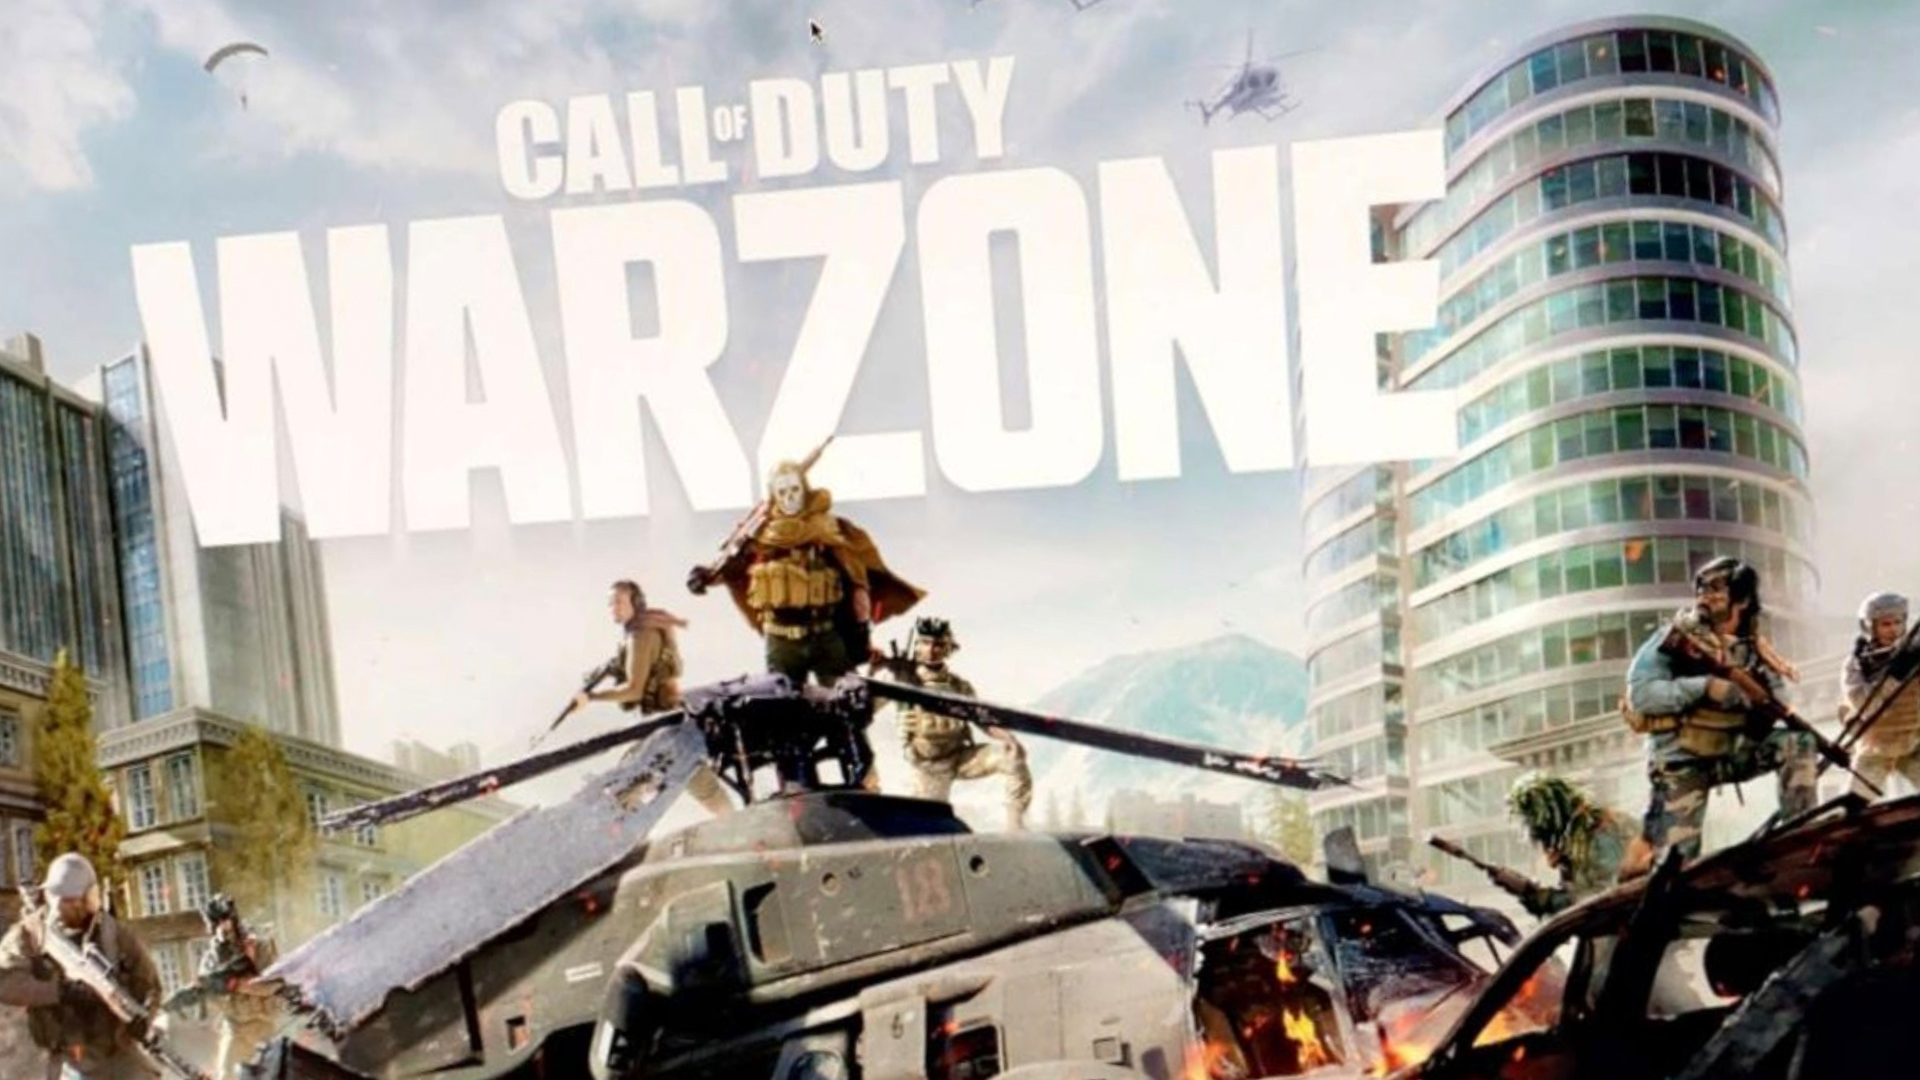 Call Of Duty Warzone Image Leaks Activision Issues Copyright